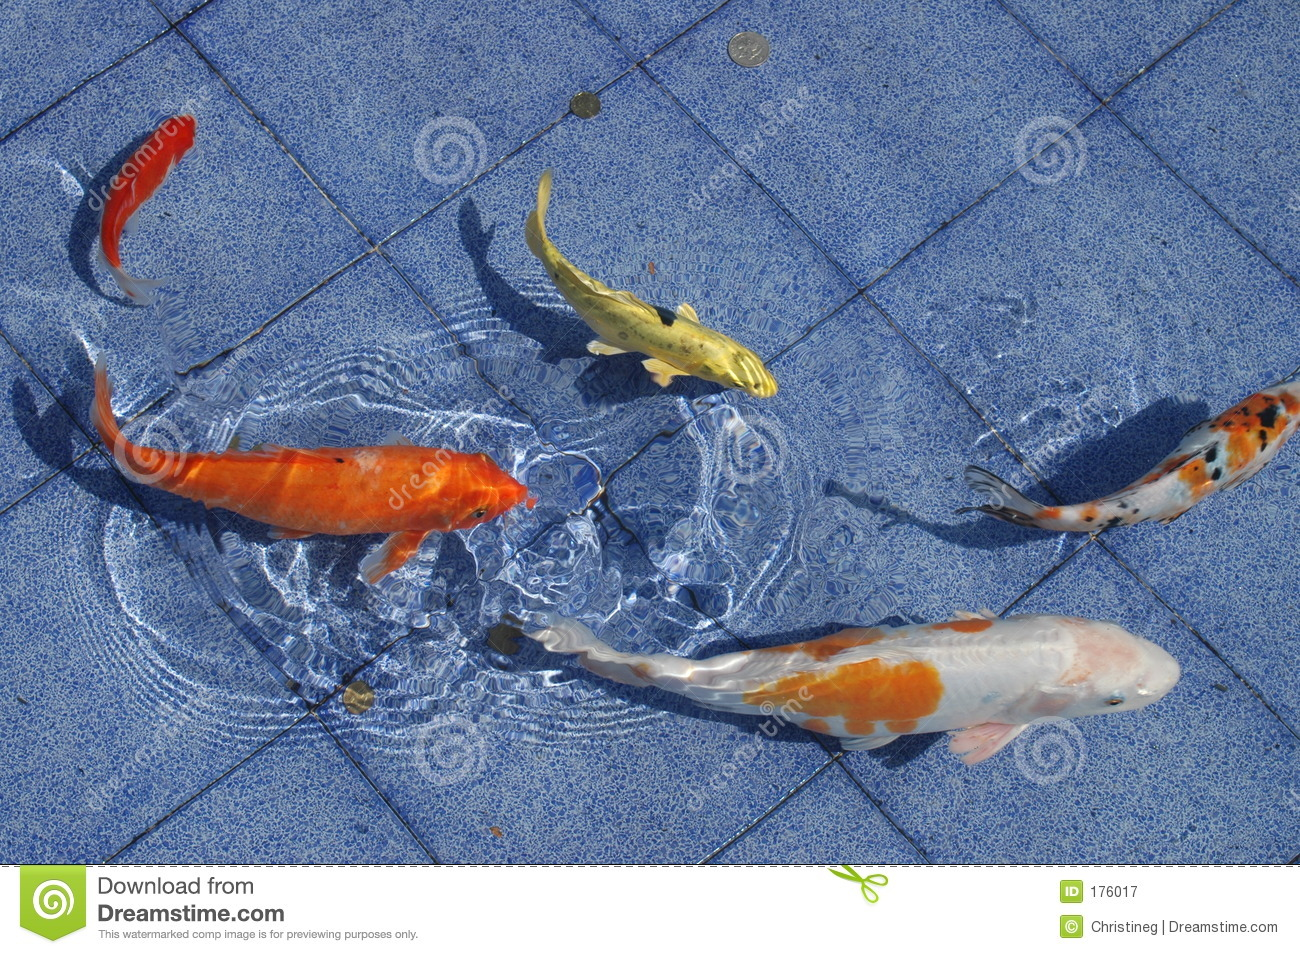 Koi Fish In A Blue Pool Stock Image Image Of Pets Marine